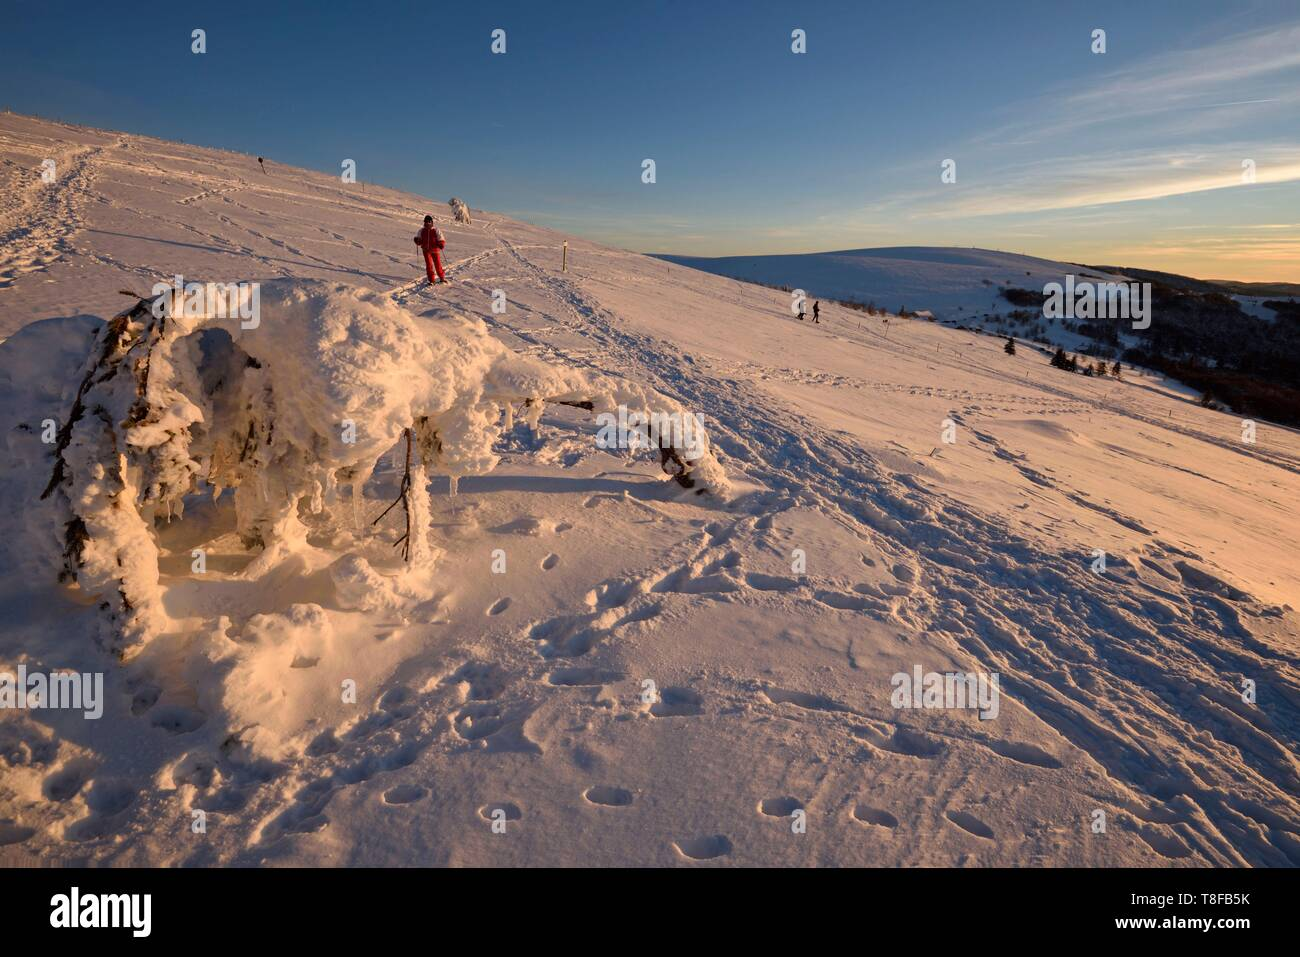 France, Haut Rhin, Hautes Vosges, Le Hohneck (1363 m) summit, spruces (Picea abies) curved by snow and wind, Route des Cretes, Kastelberg, sunset, snow, winter - Stock Image